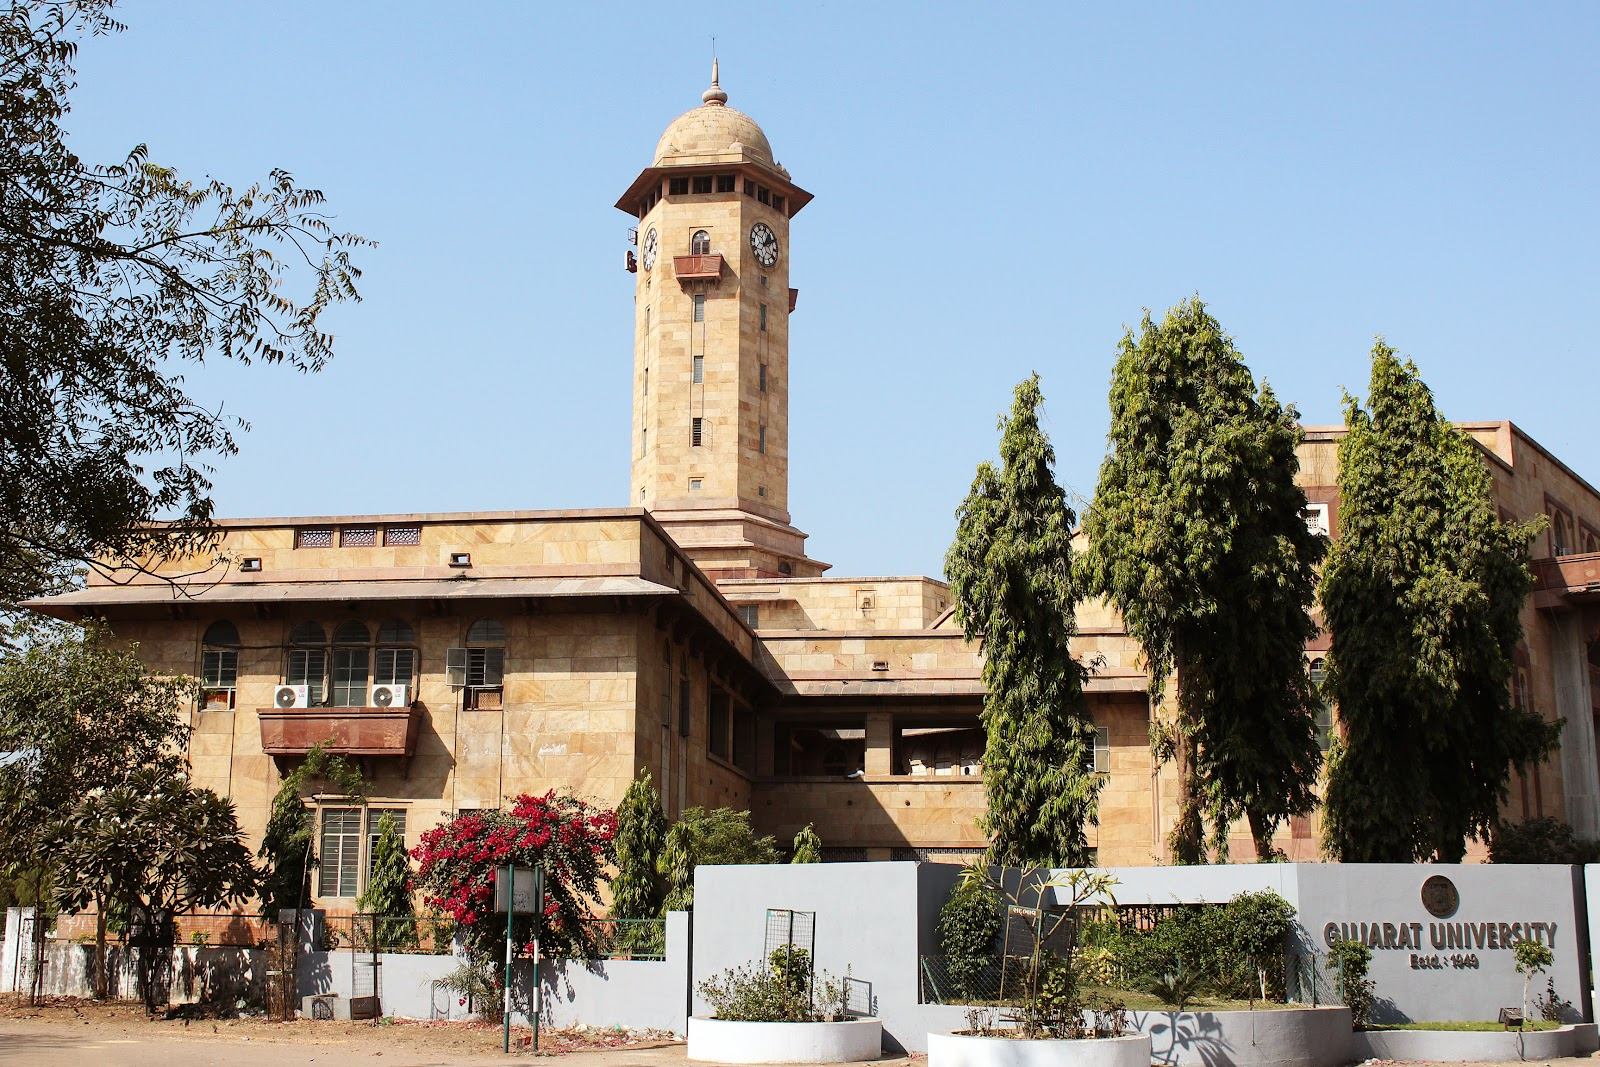 State government universities in India